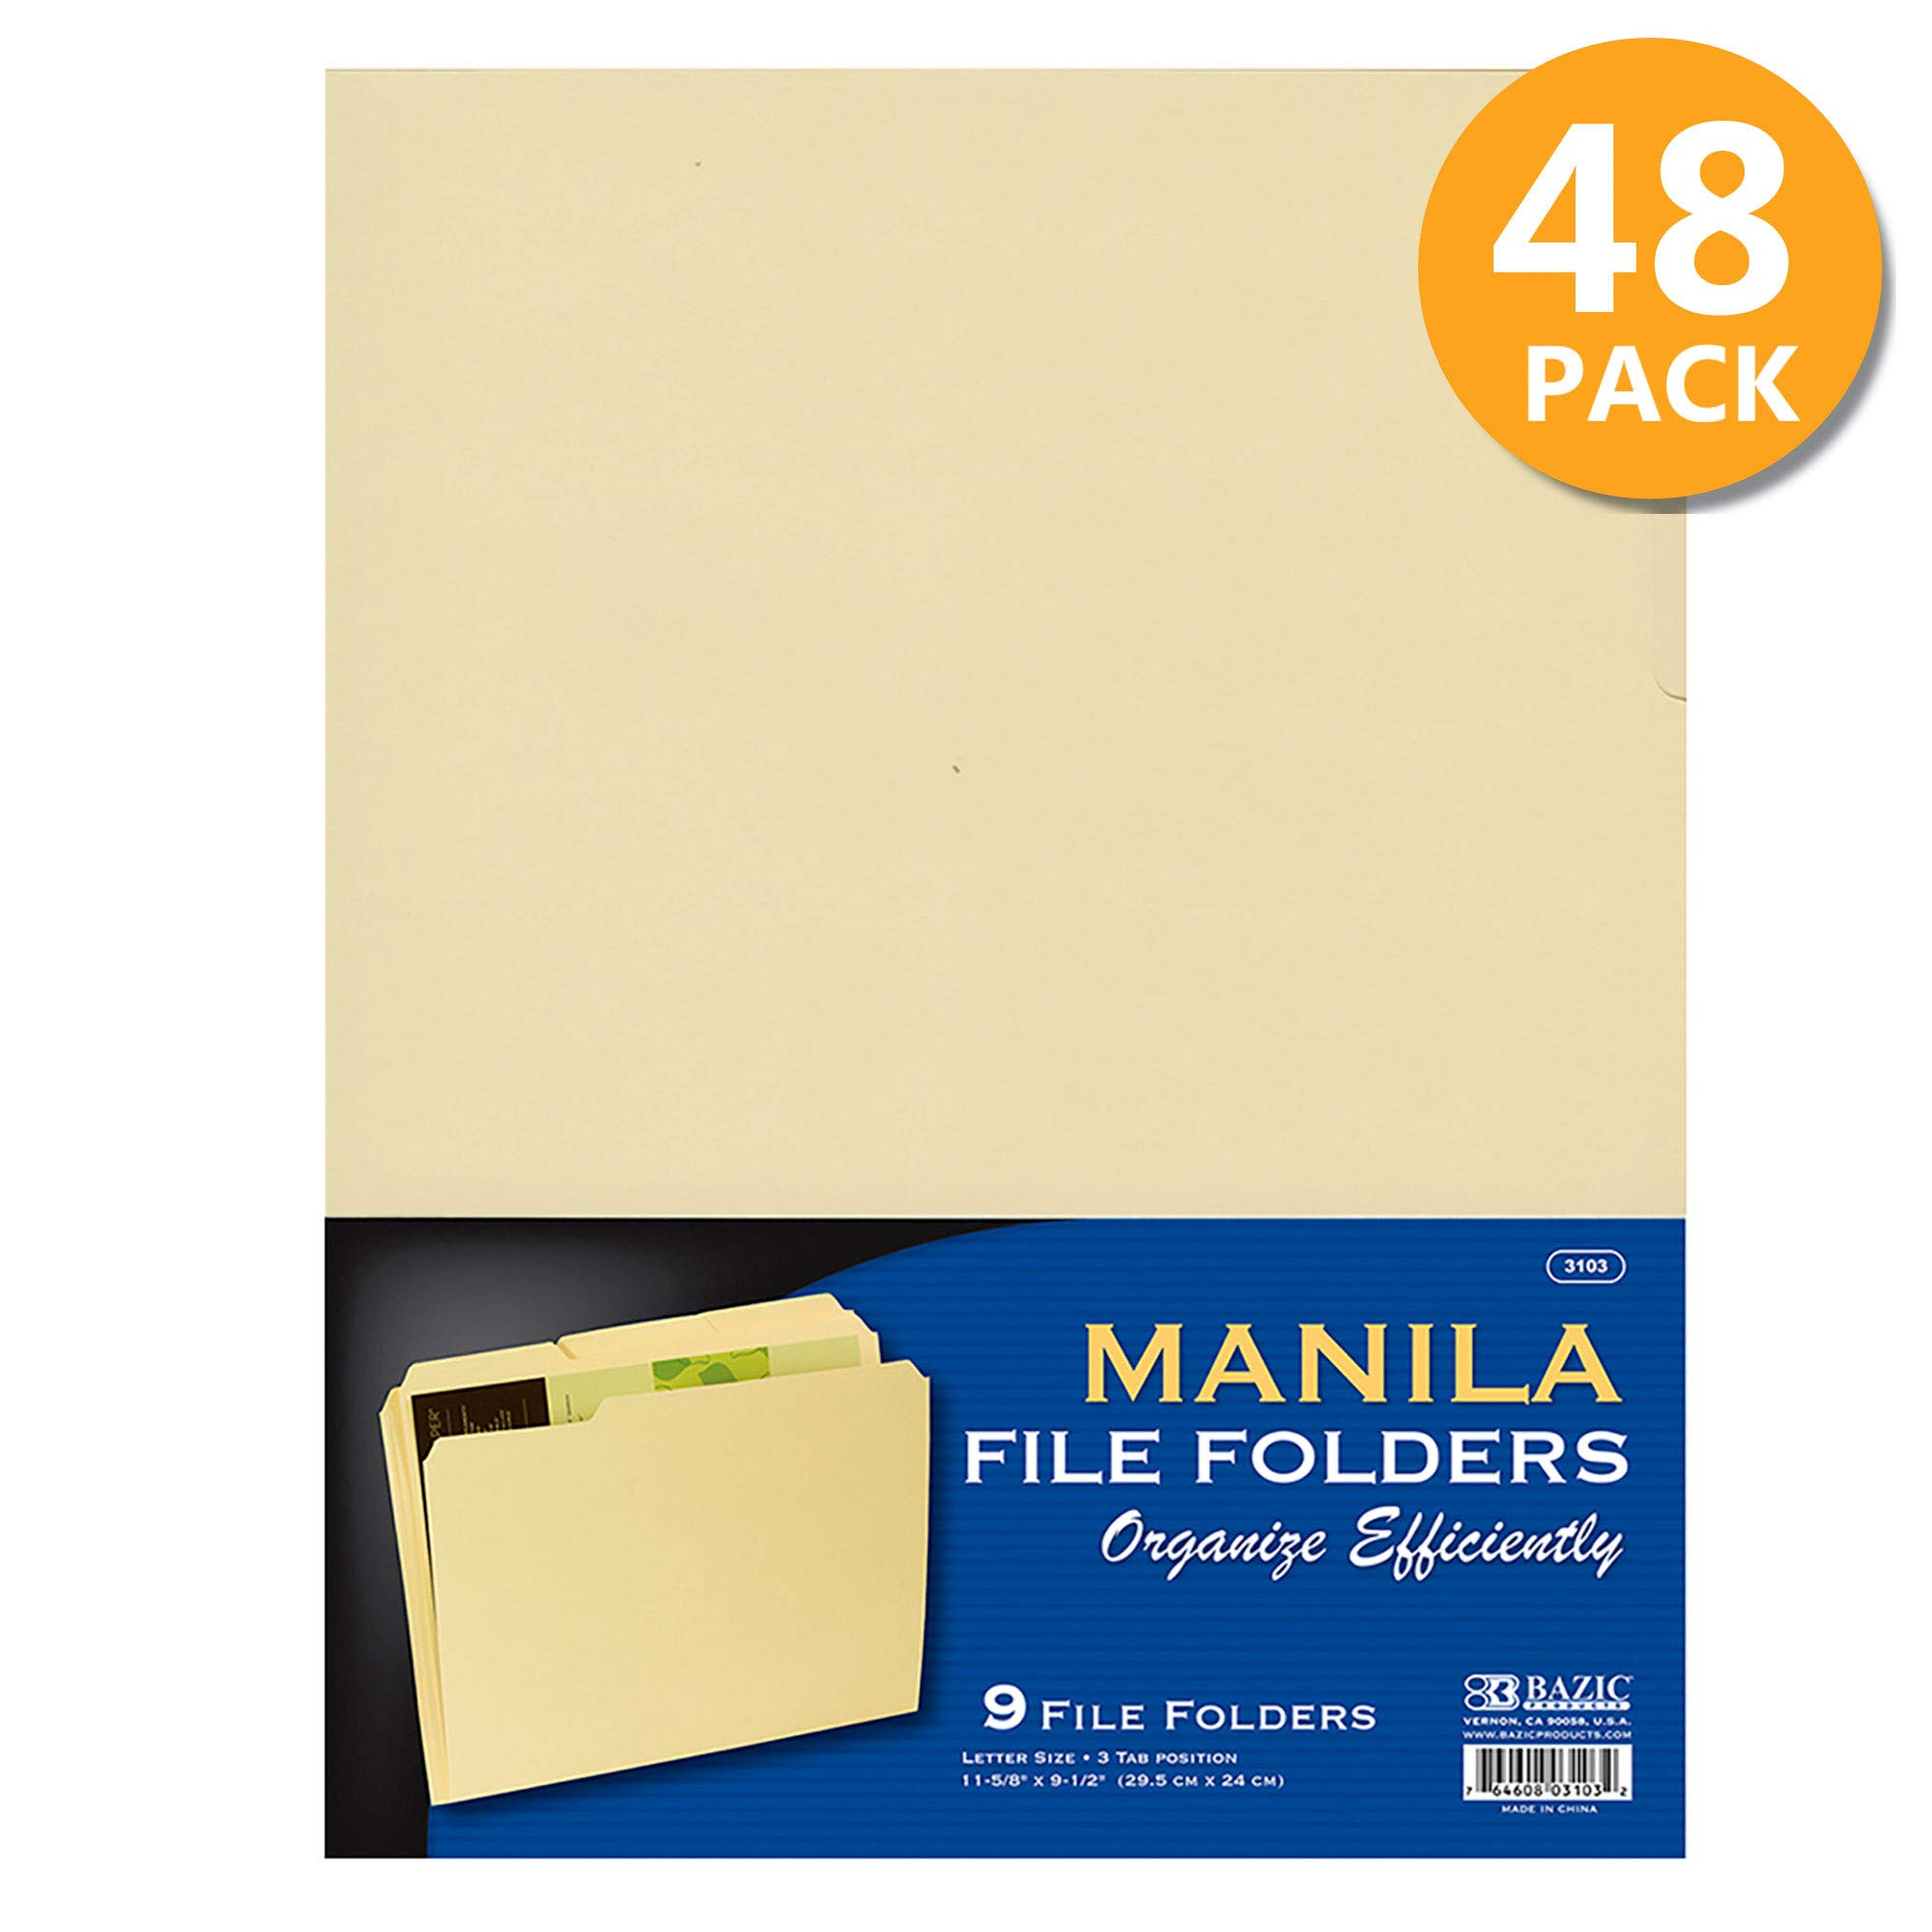 BAZIC 1/3 Cut Letter Size Manila File Folder, Classic Manila Tabs Left Right Center Positions, Great for Organizing Easy Files Document Storage, Office Home Teacher Business (9/Pack), 48-Pack